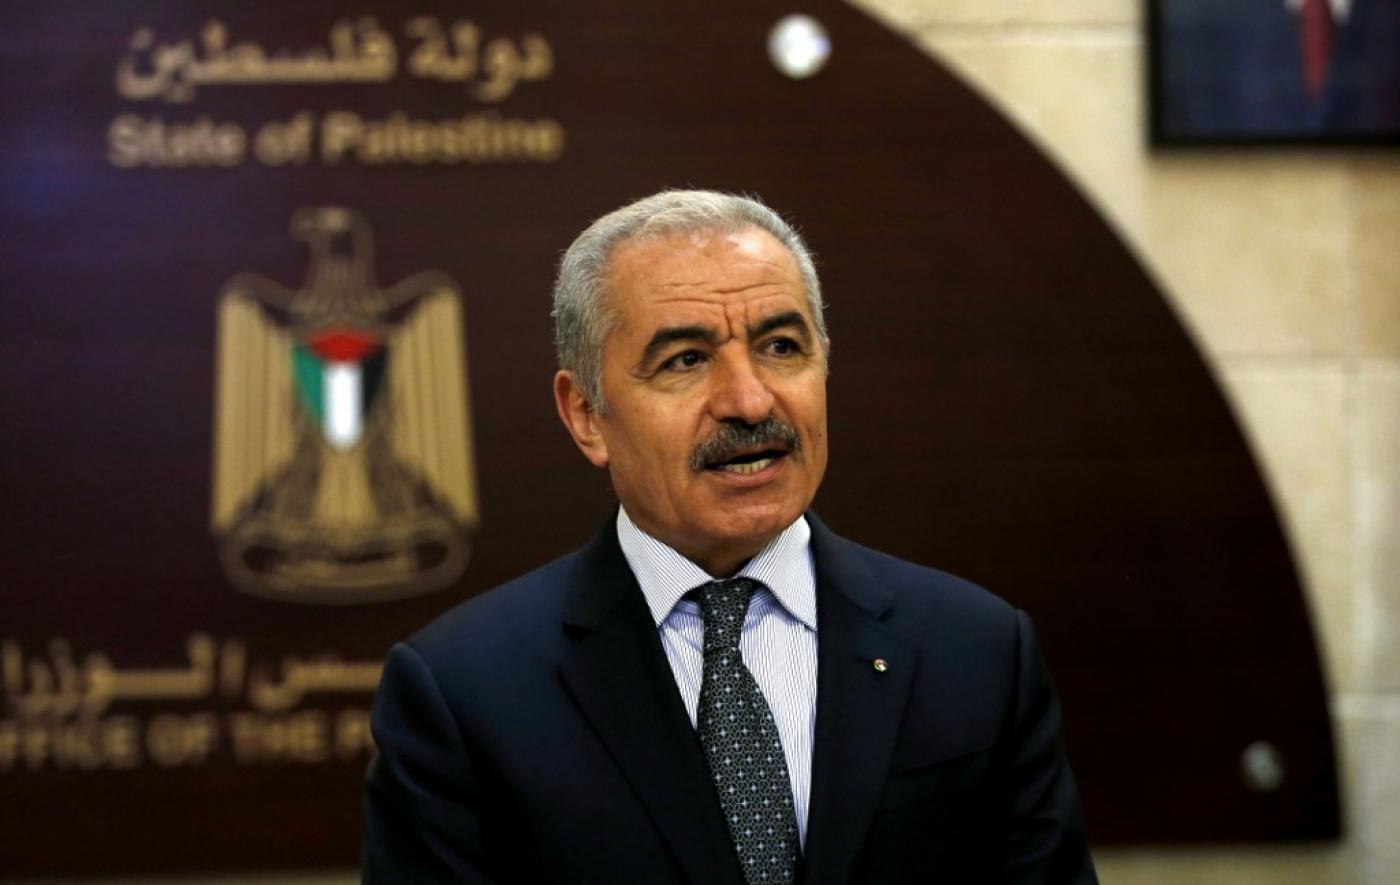 Palestinian PM Mohammed Ishtayeh said Tuesday's signing ceremony 'will be a black day in the history of the Arab nations'.